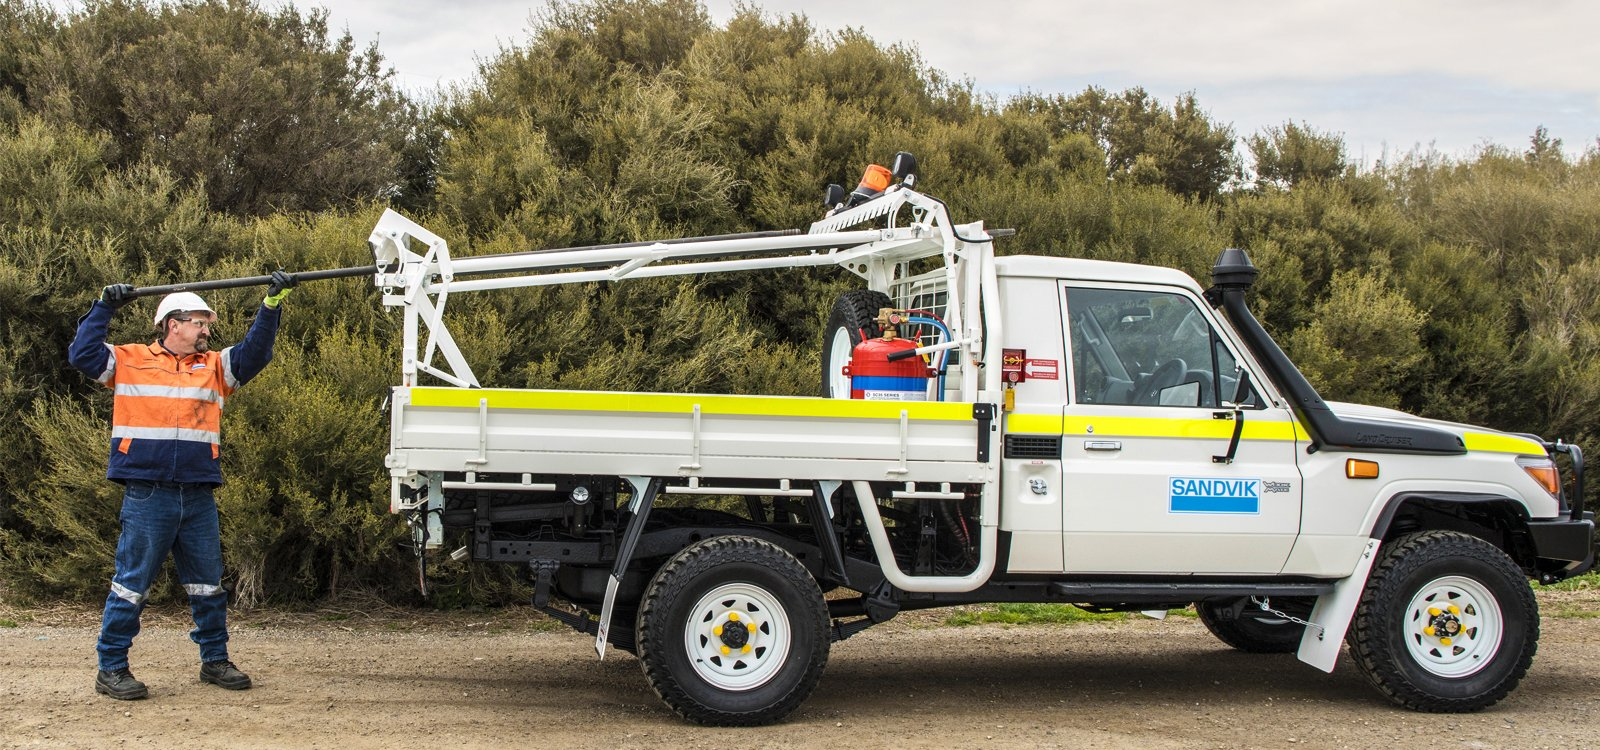 <p>The new design enables personnel to safely transport drill rods without their sliding around or falling off the vehicle.</p>